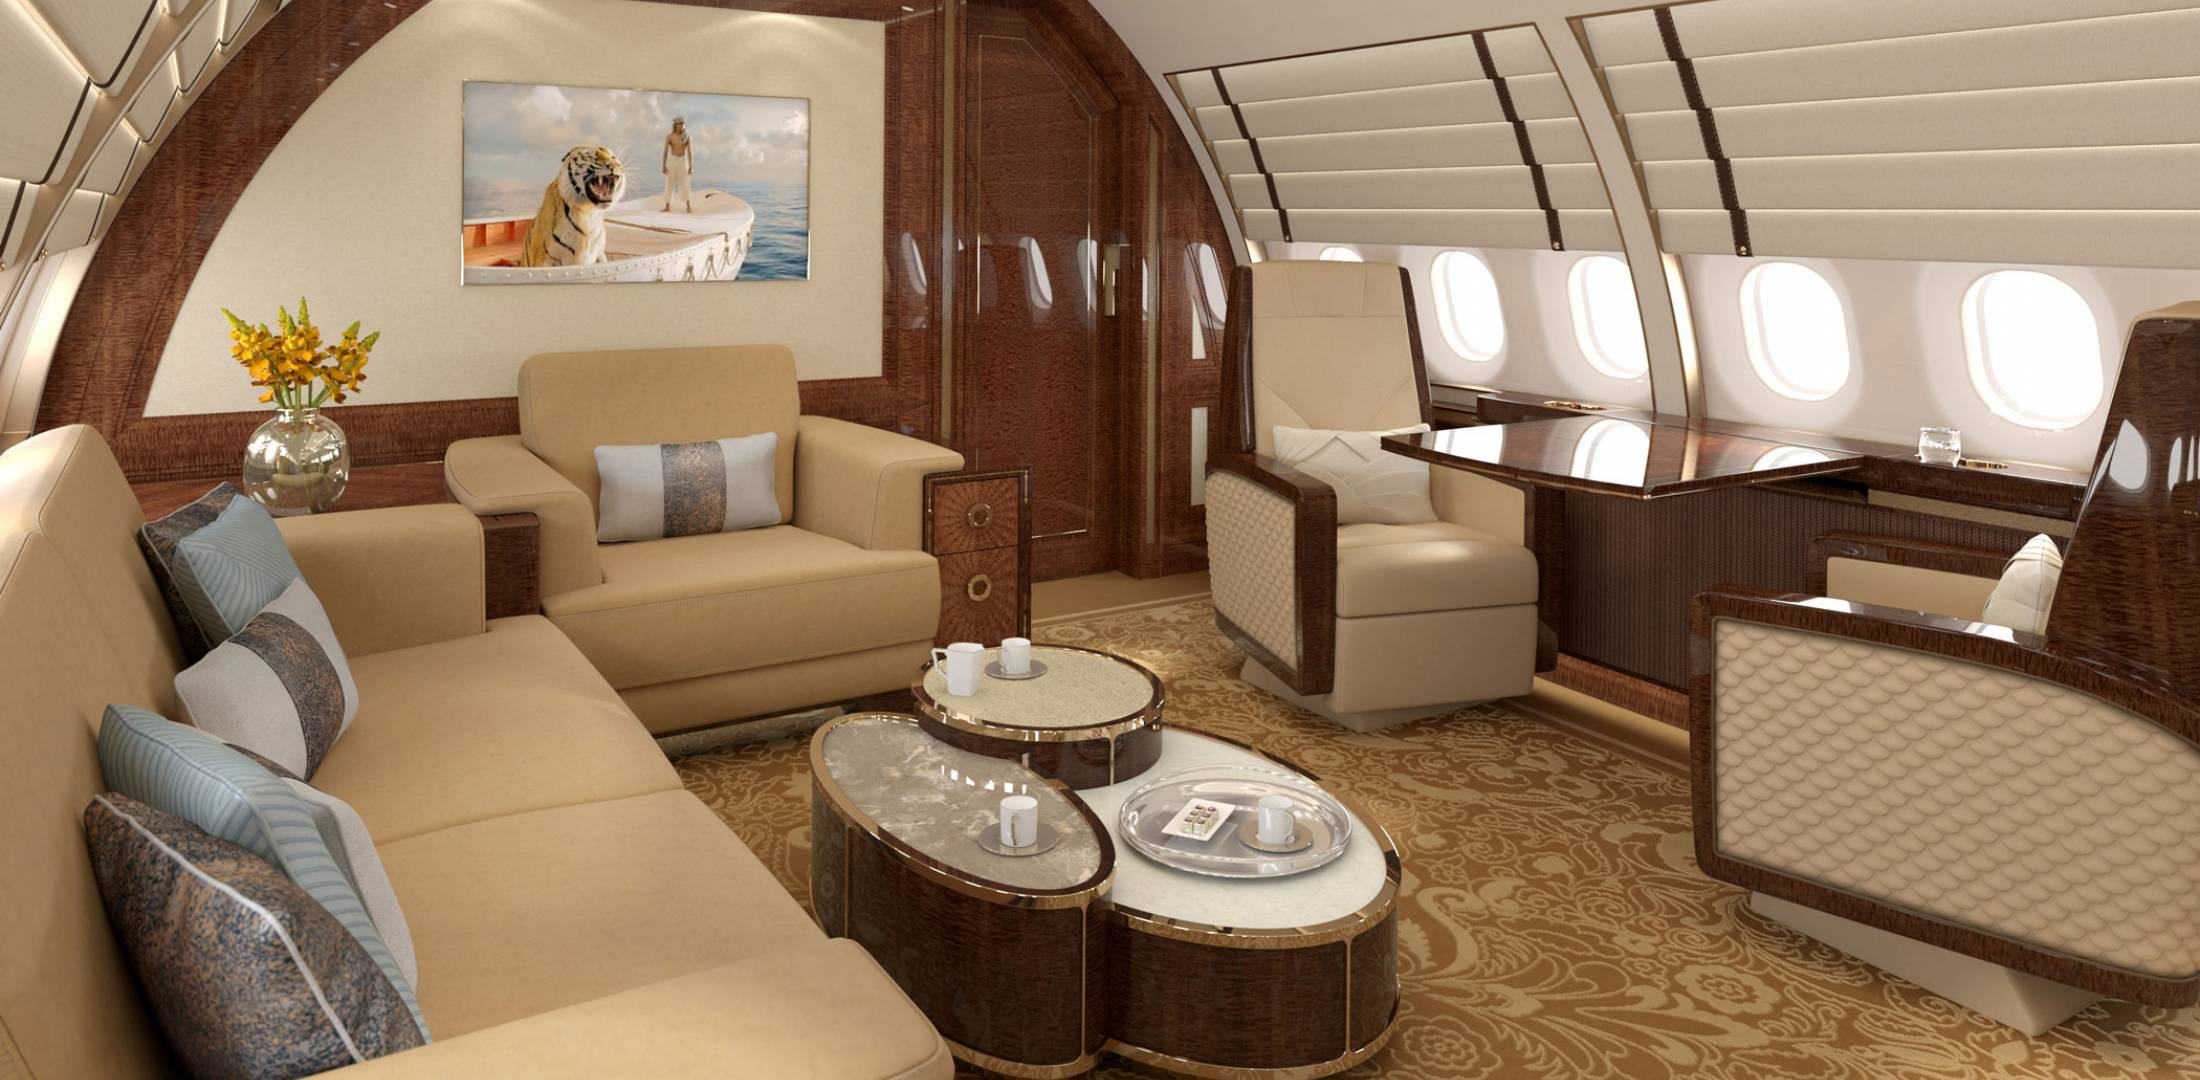 Comlux created a relaxing spacious room in this rendering of an ACJ320neo interior. The company has already delivered two ACJ320neo interiors, one last fall and another this spring. A third will be delivered this fall, and a fourth is in the completion process.